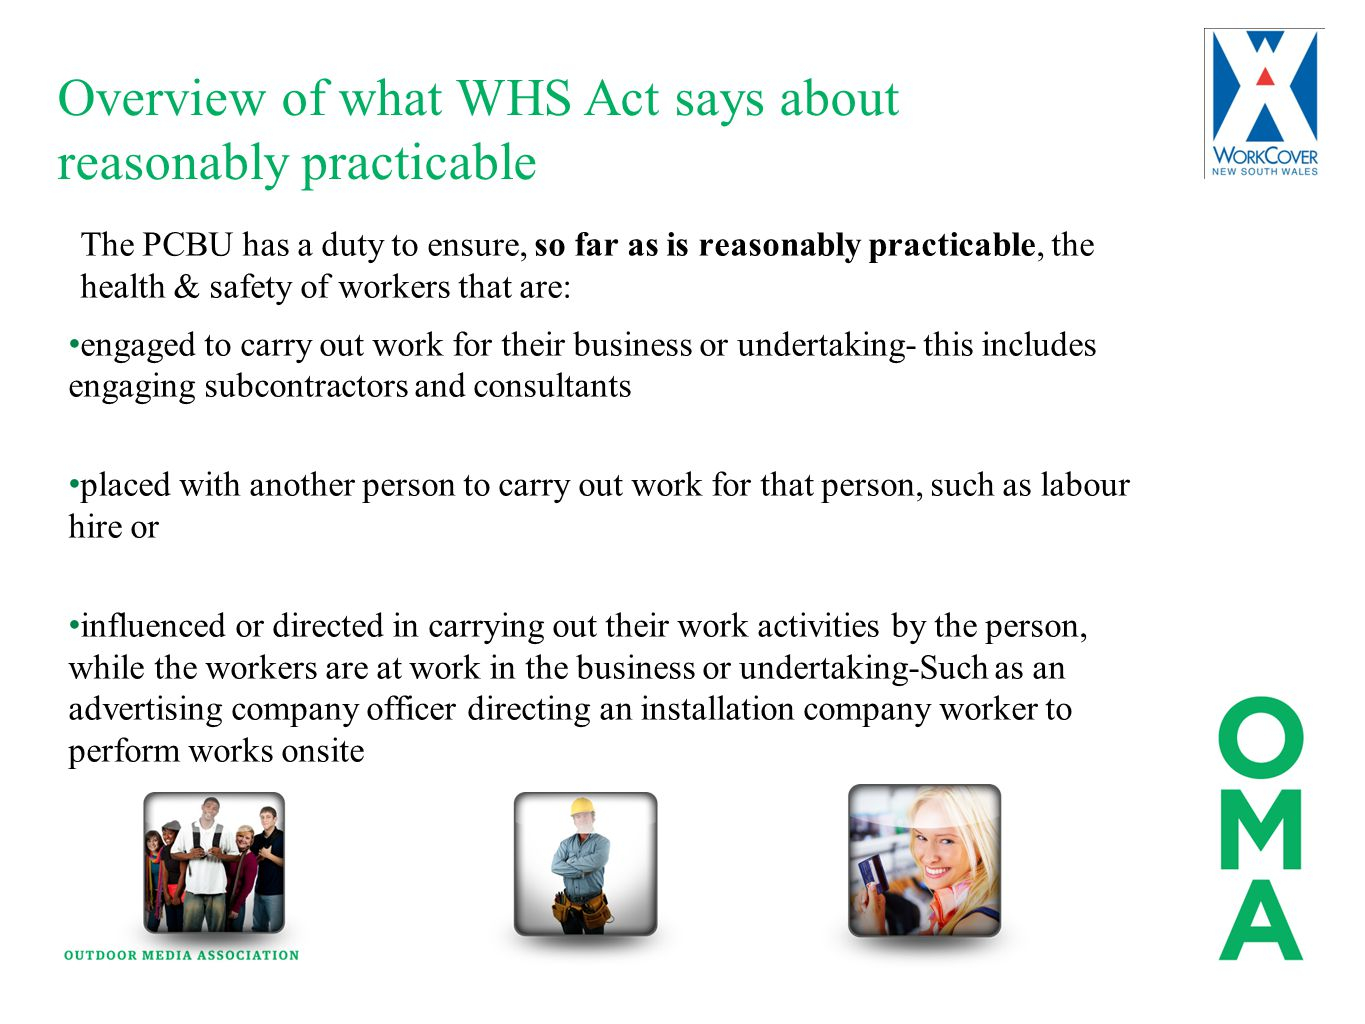 Overview of what WHS Act says about reasonably practicable The PCBU has a duty to ensure, so far as is reasonably practicable, the health & safety of